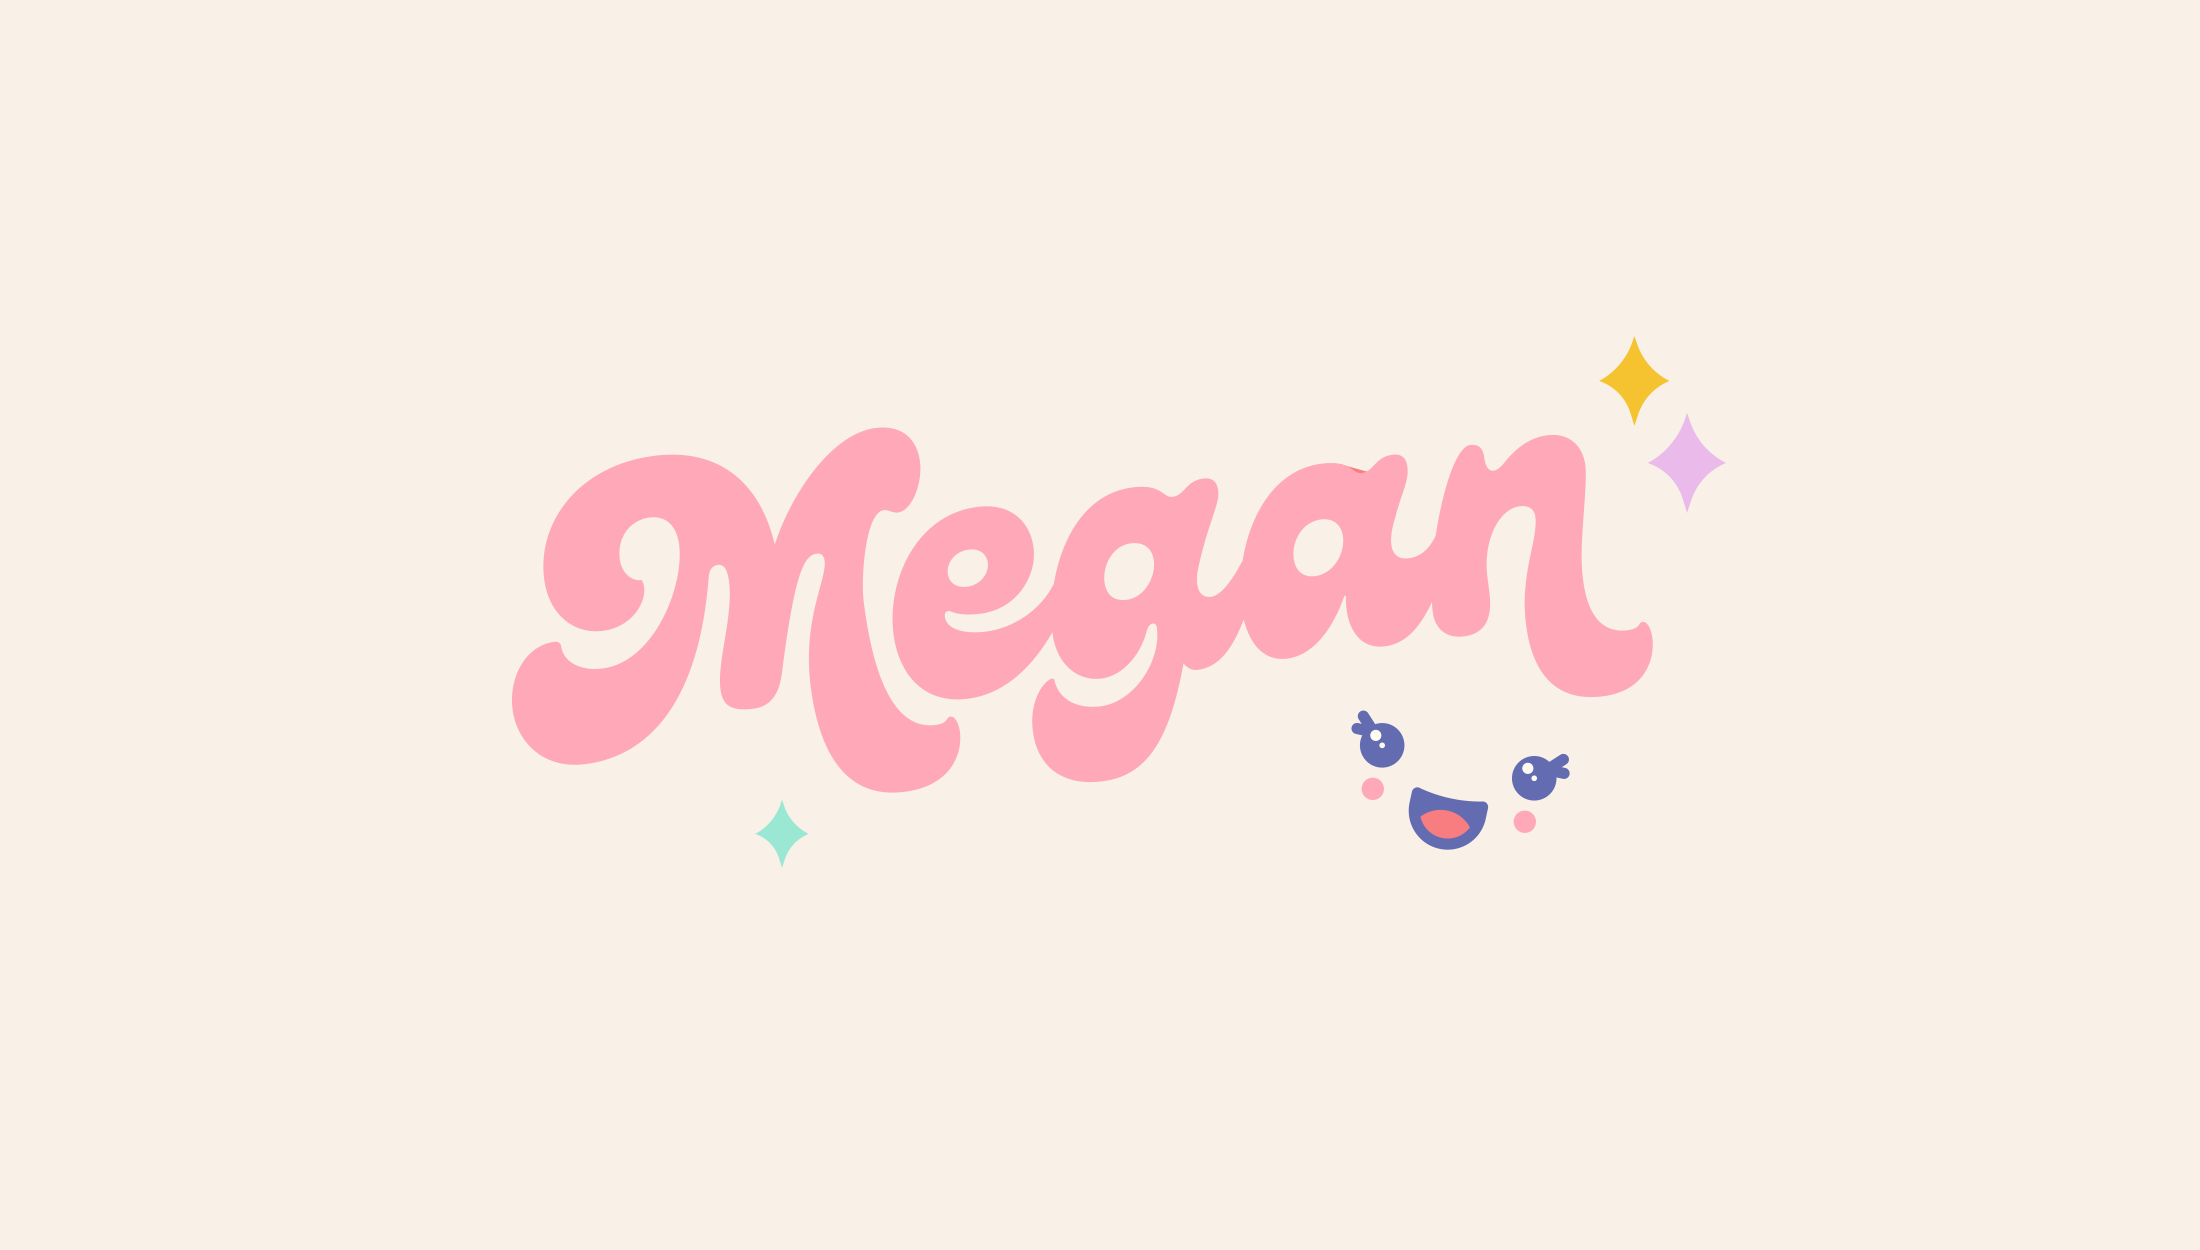 Logo design for MeganPlays, a successful gaming & lifestyle youtuber - designed by Wiltshire-based graphic designer, Kaye Huett